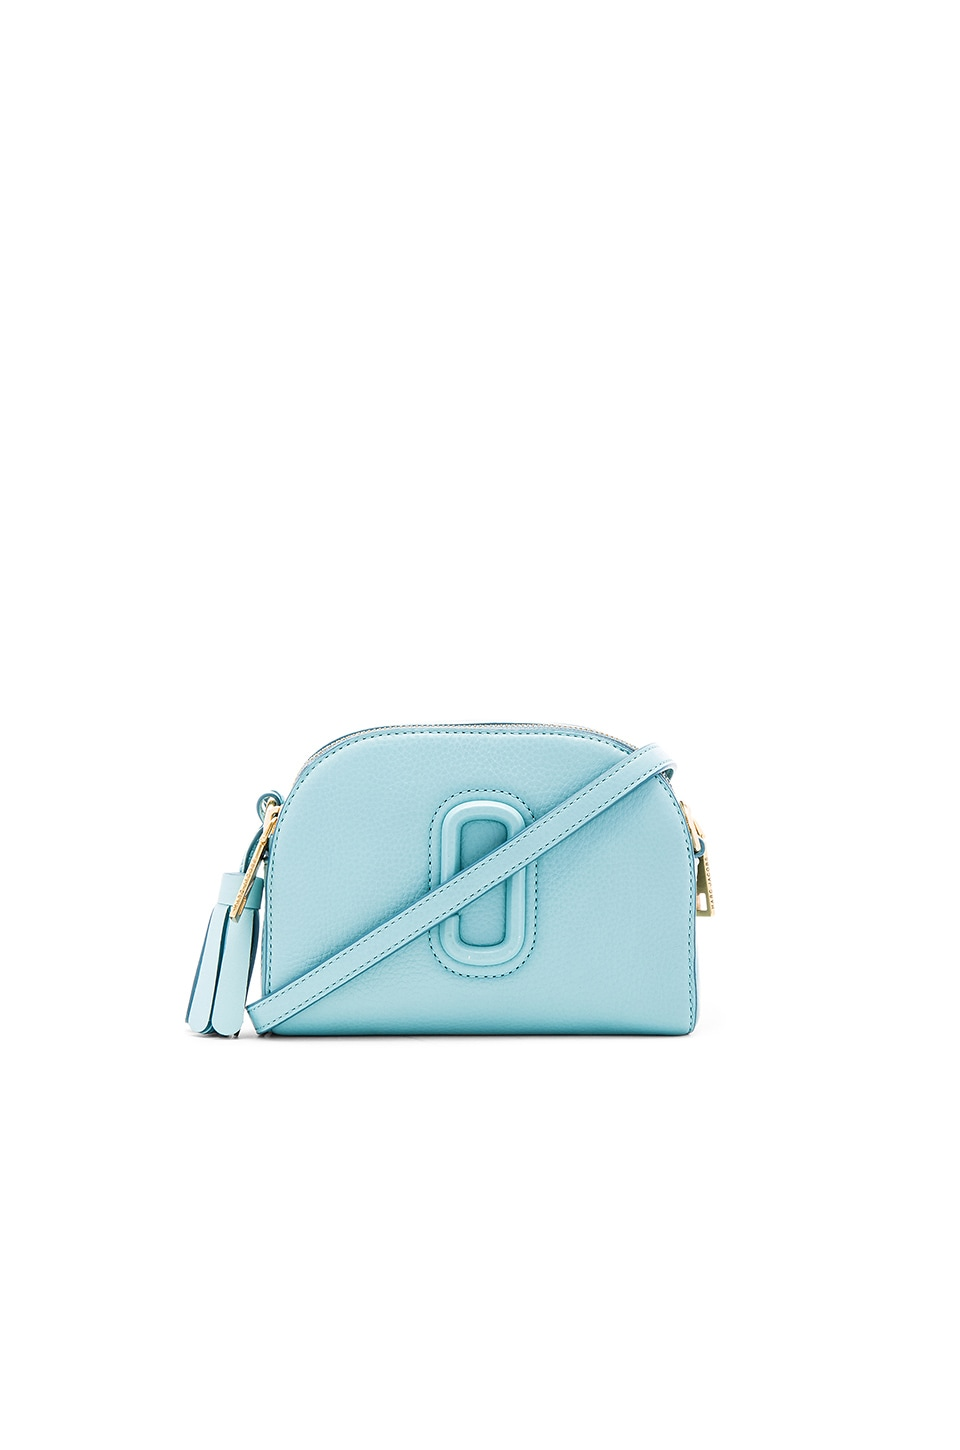 Marc Jacobs Shutter Small Camera Bag in Azur